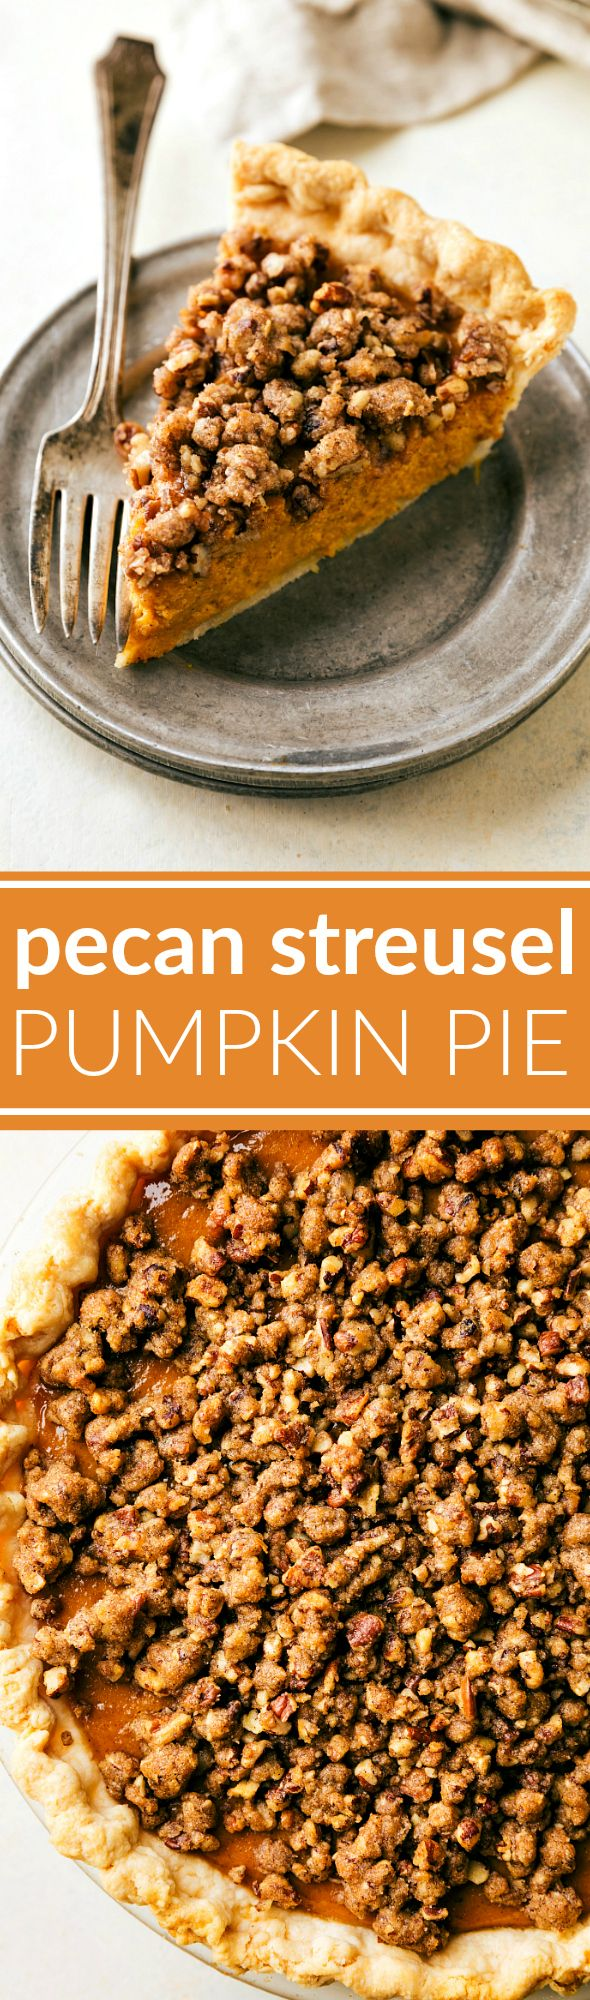 A simple-to-make (no hand mixers or stand mixers required!) pumpkin pie with a delicious sugary-pecan streusel. The (optional) two-ingredient maple whipped topping takes this pie over the top! via http://chelseasmessyapron.com